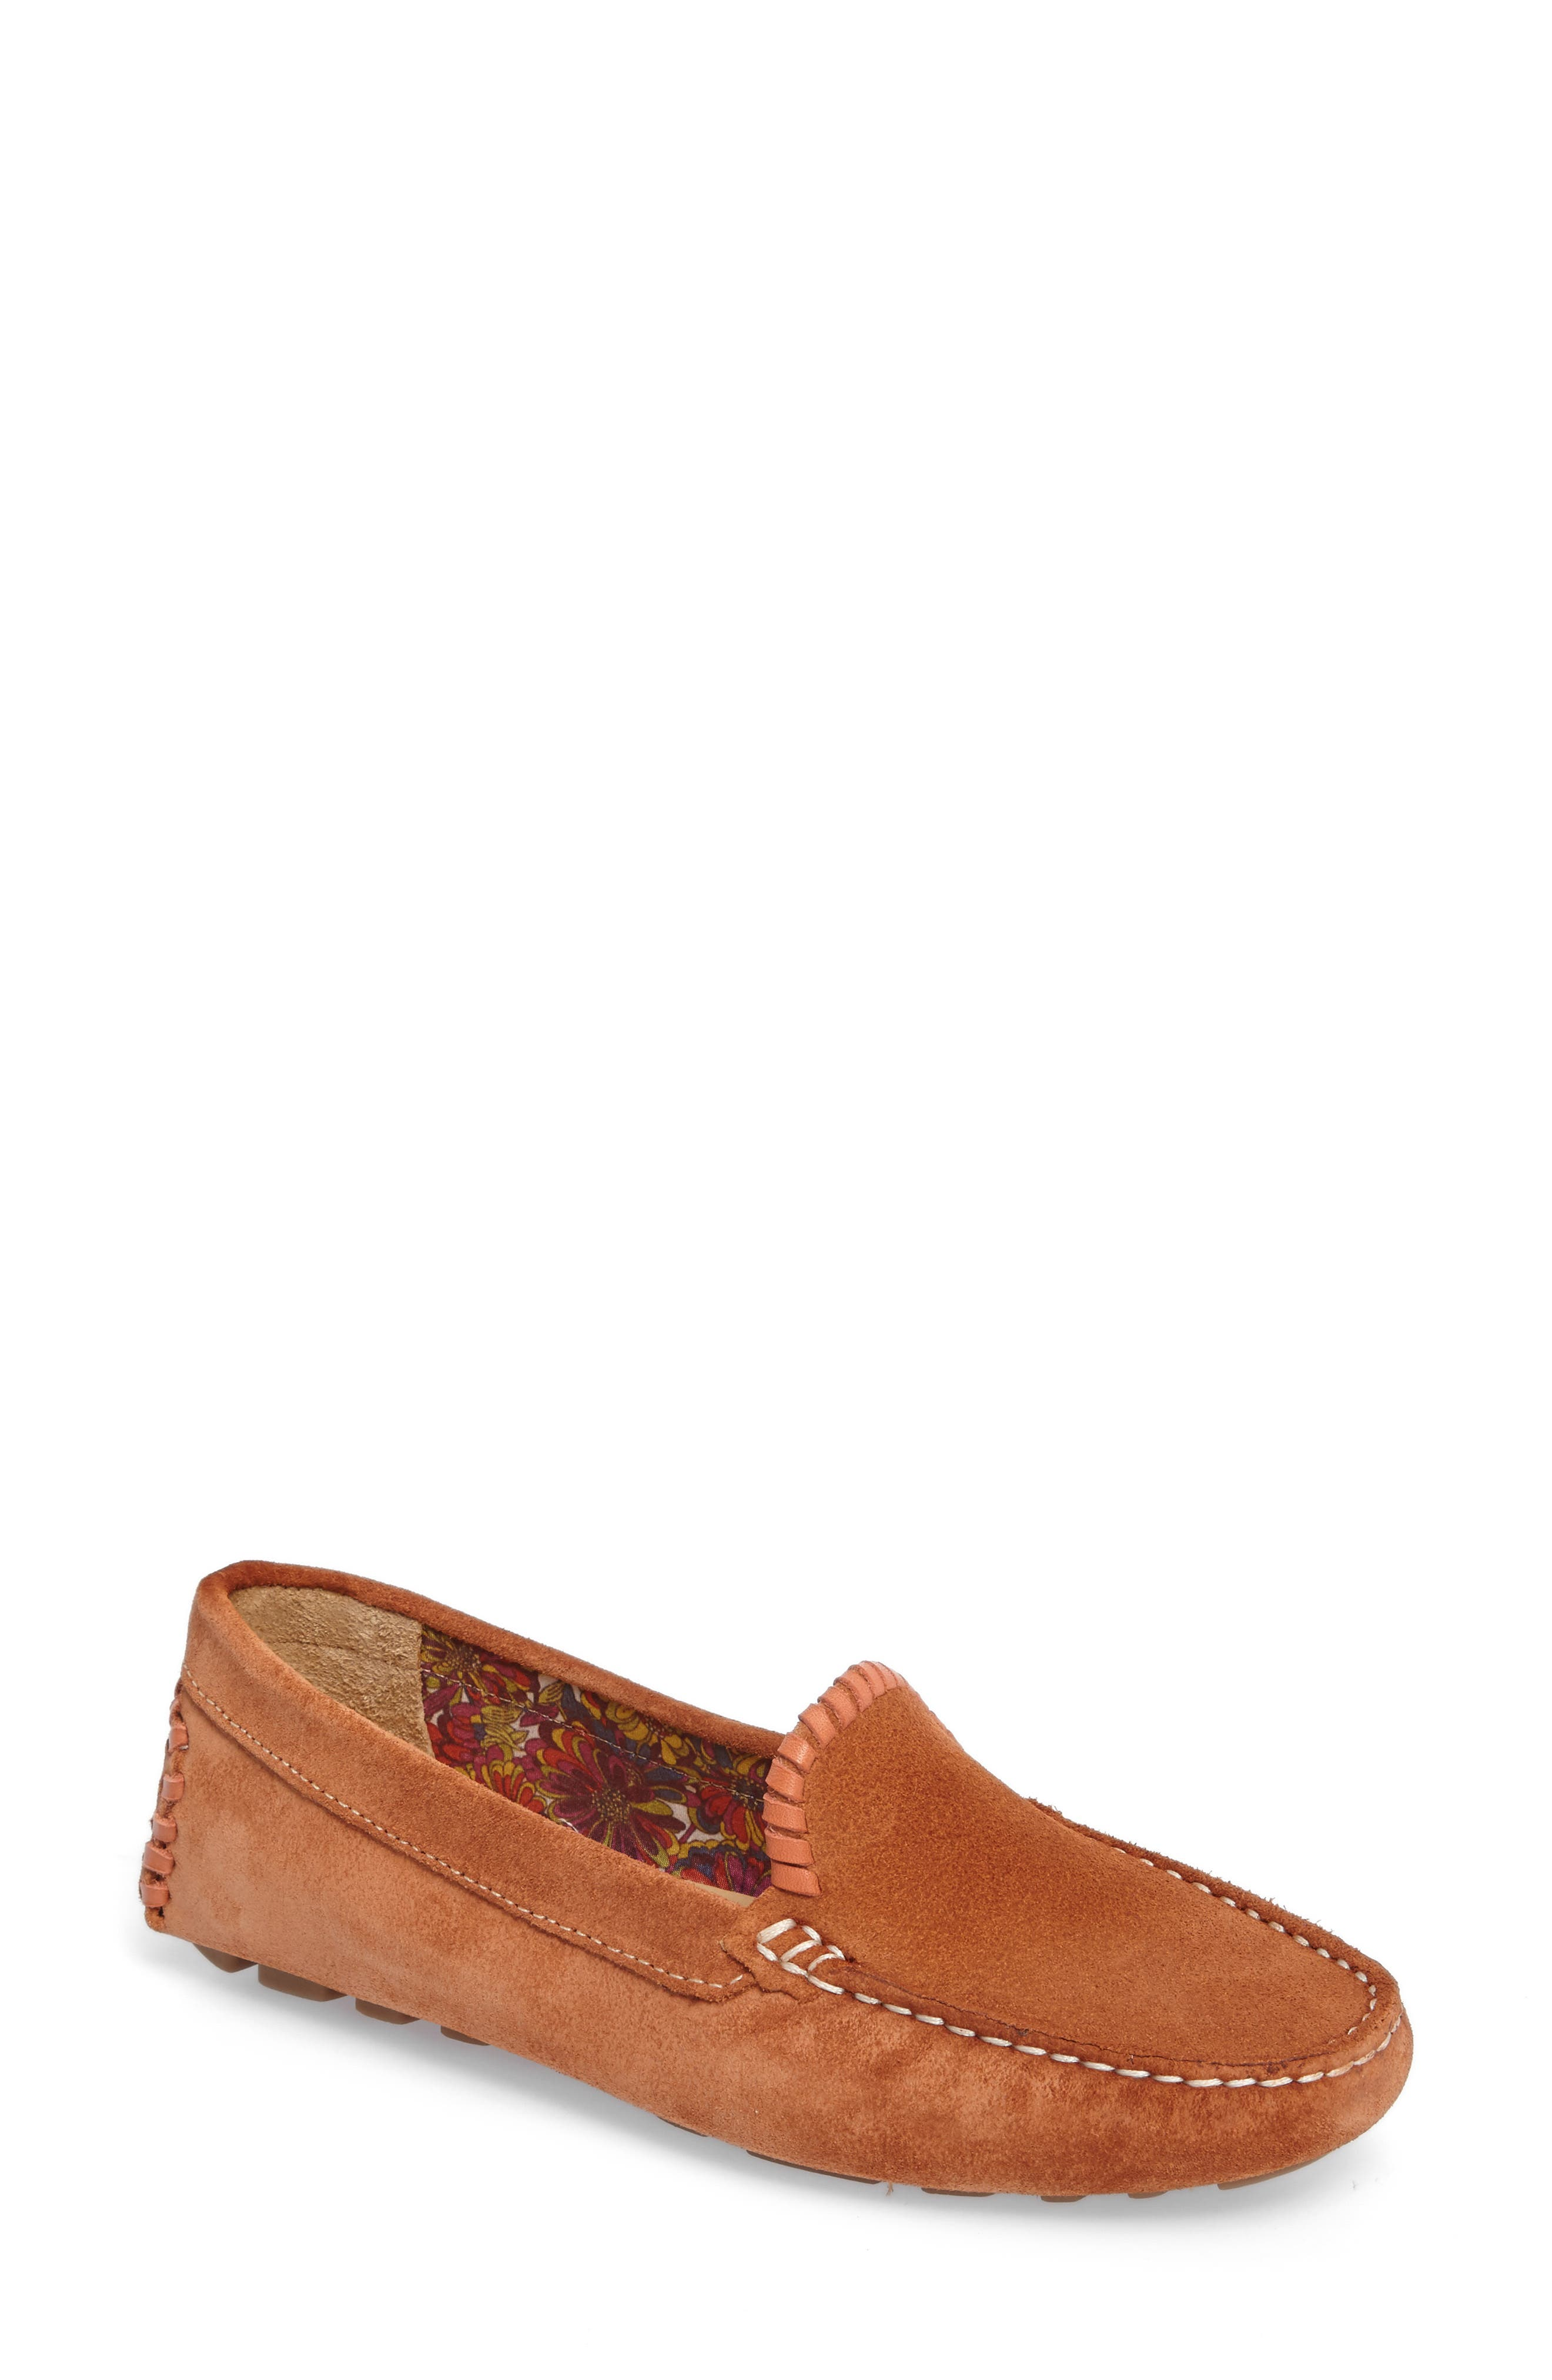 Taylor Driving Loafer,                         Main,                         color, 800